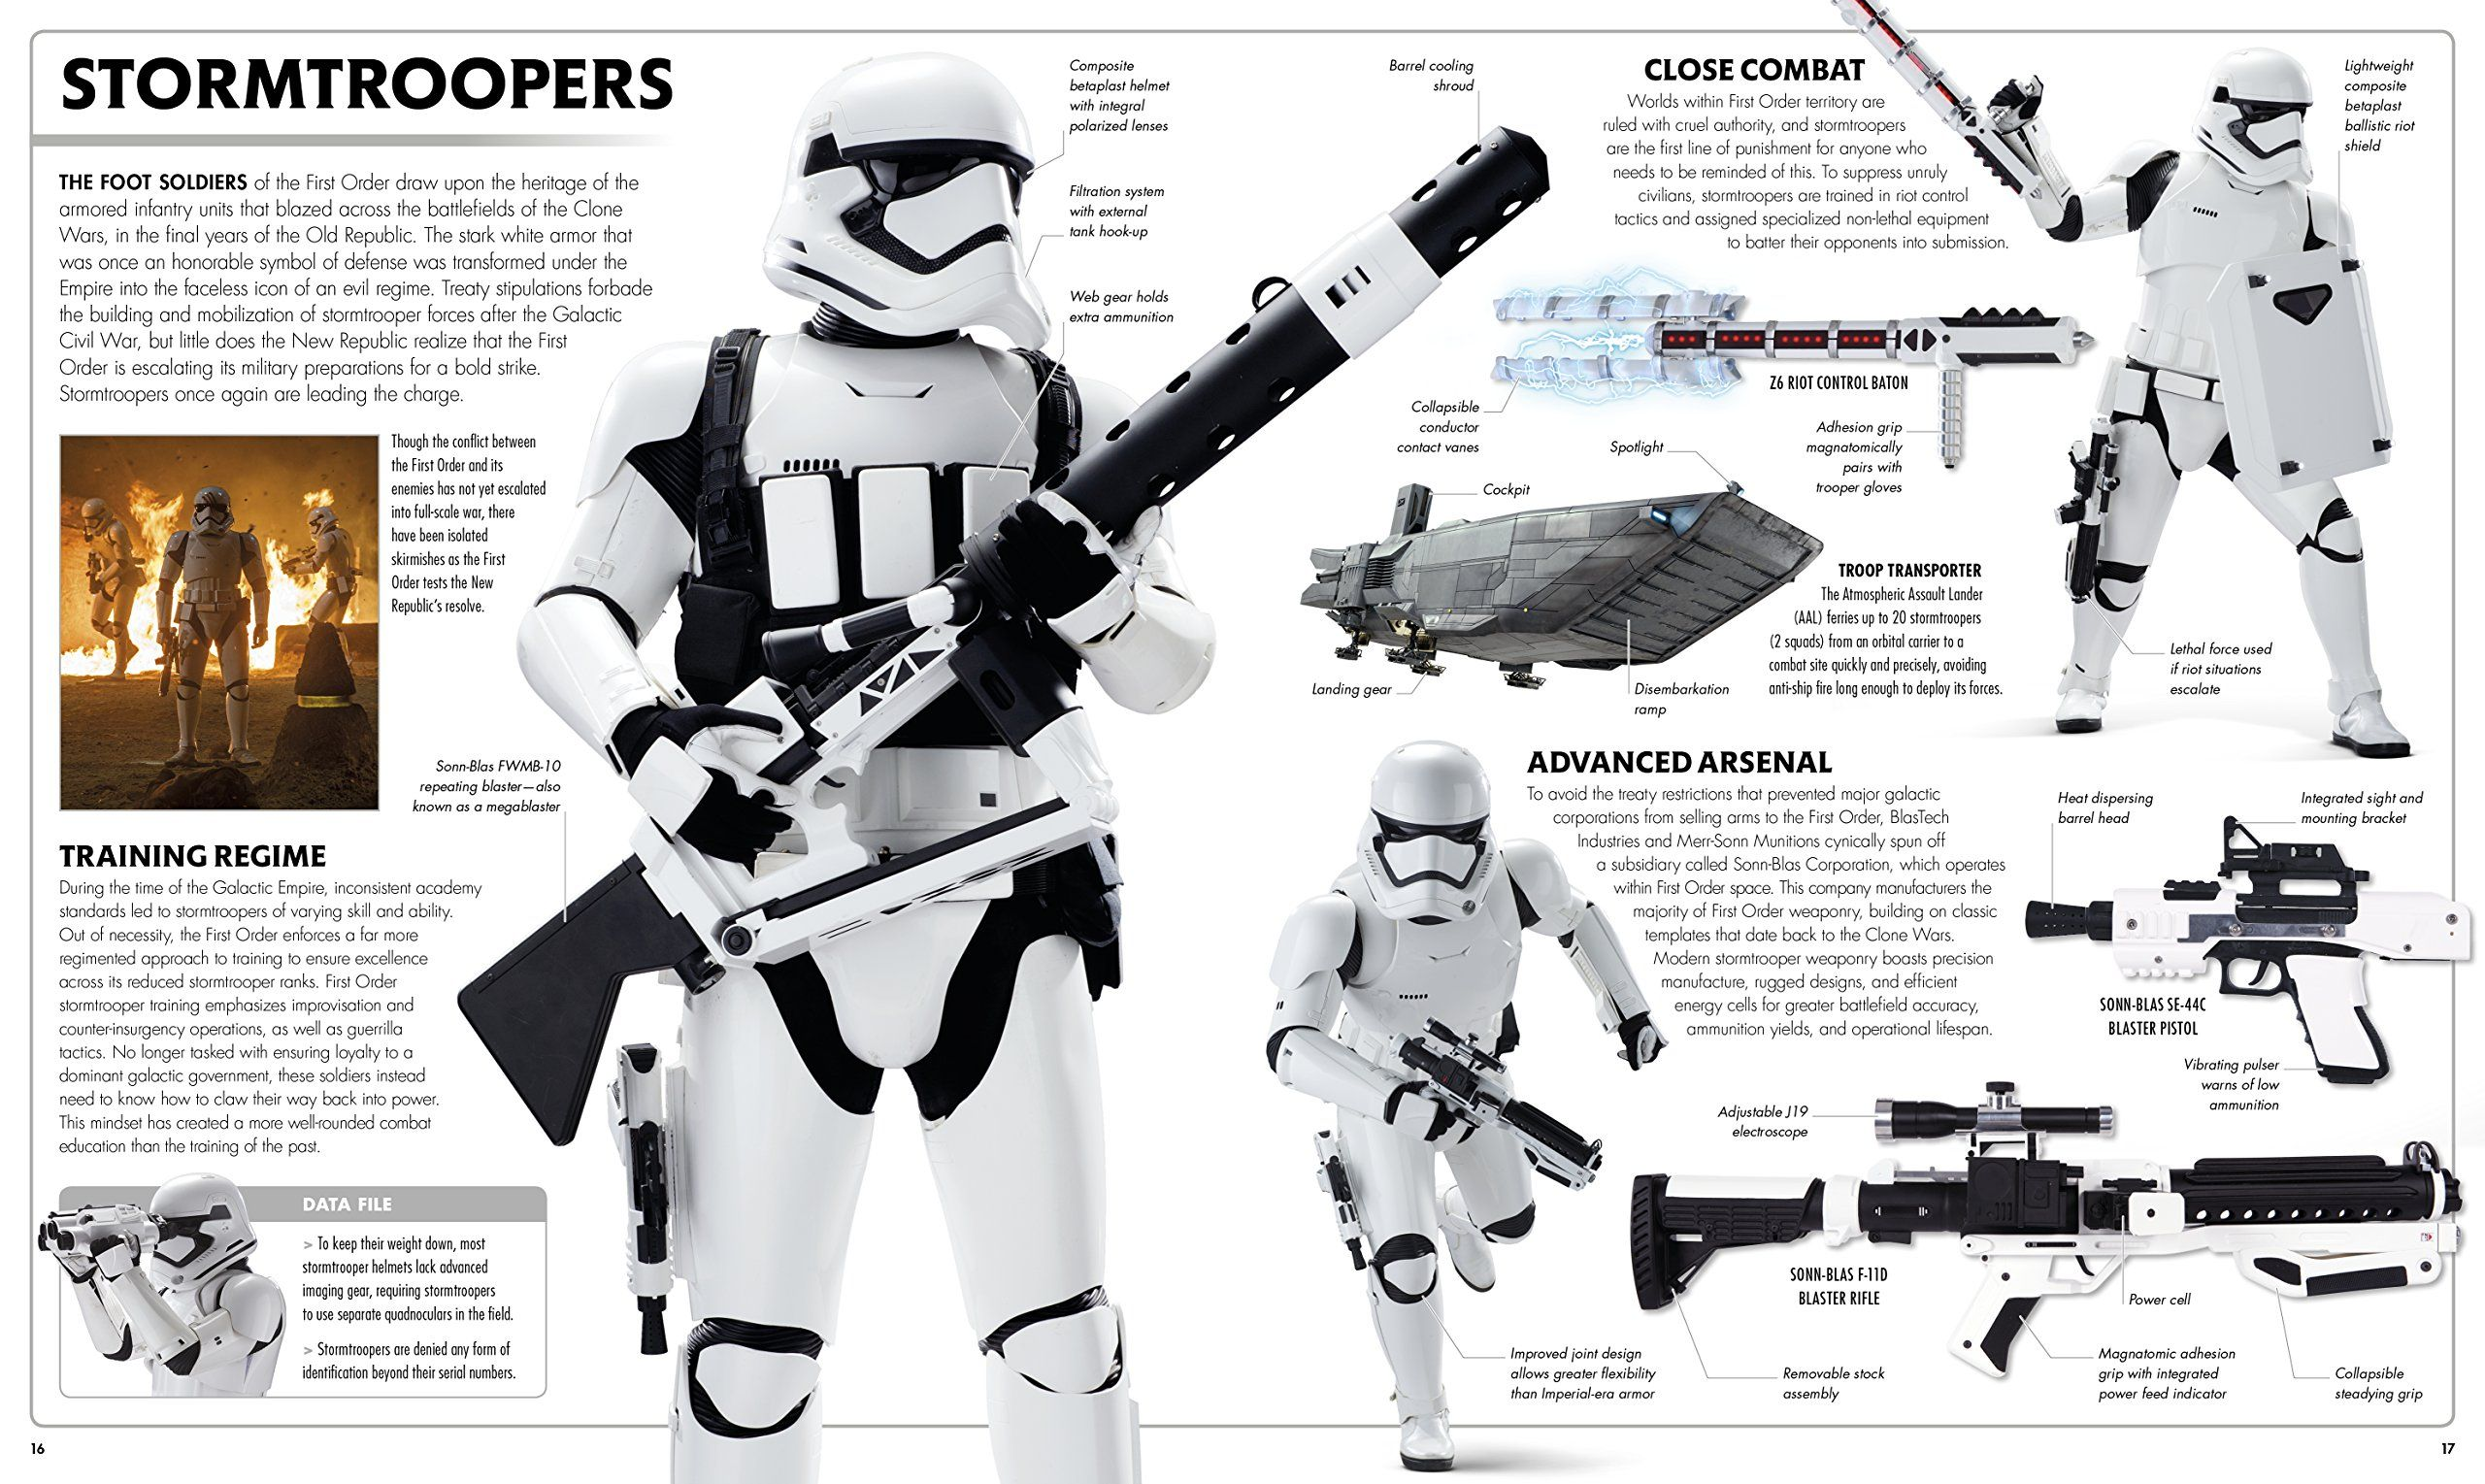 Star Wars The Force Awakens Visual Dictionary Stormtroopers S